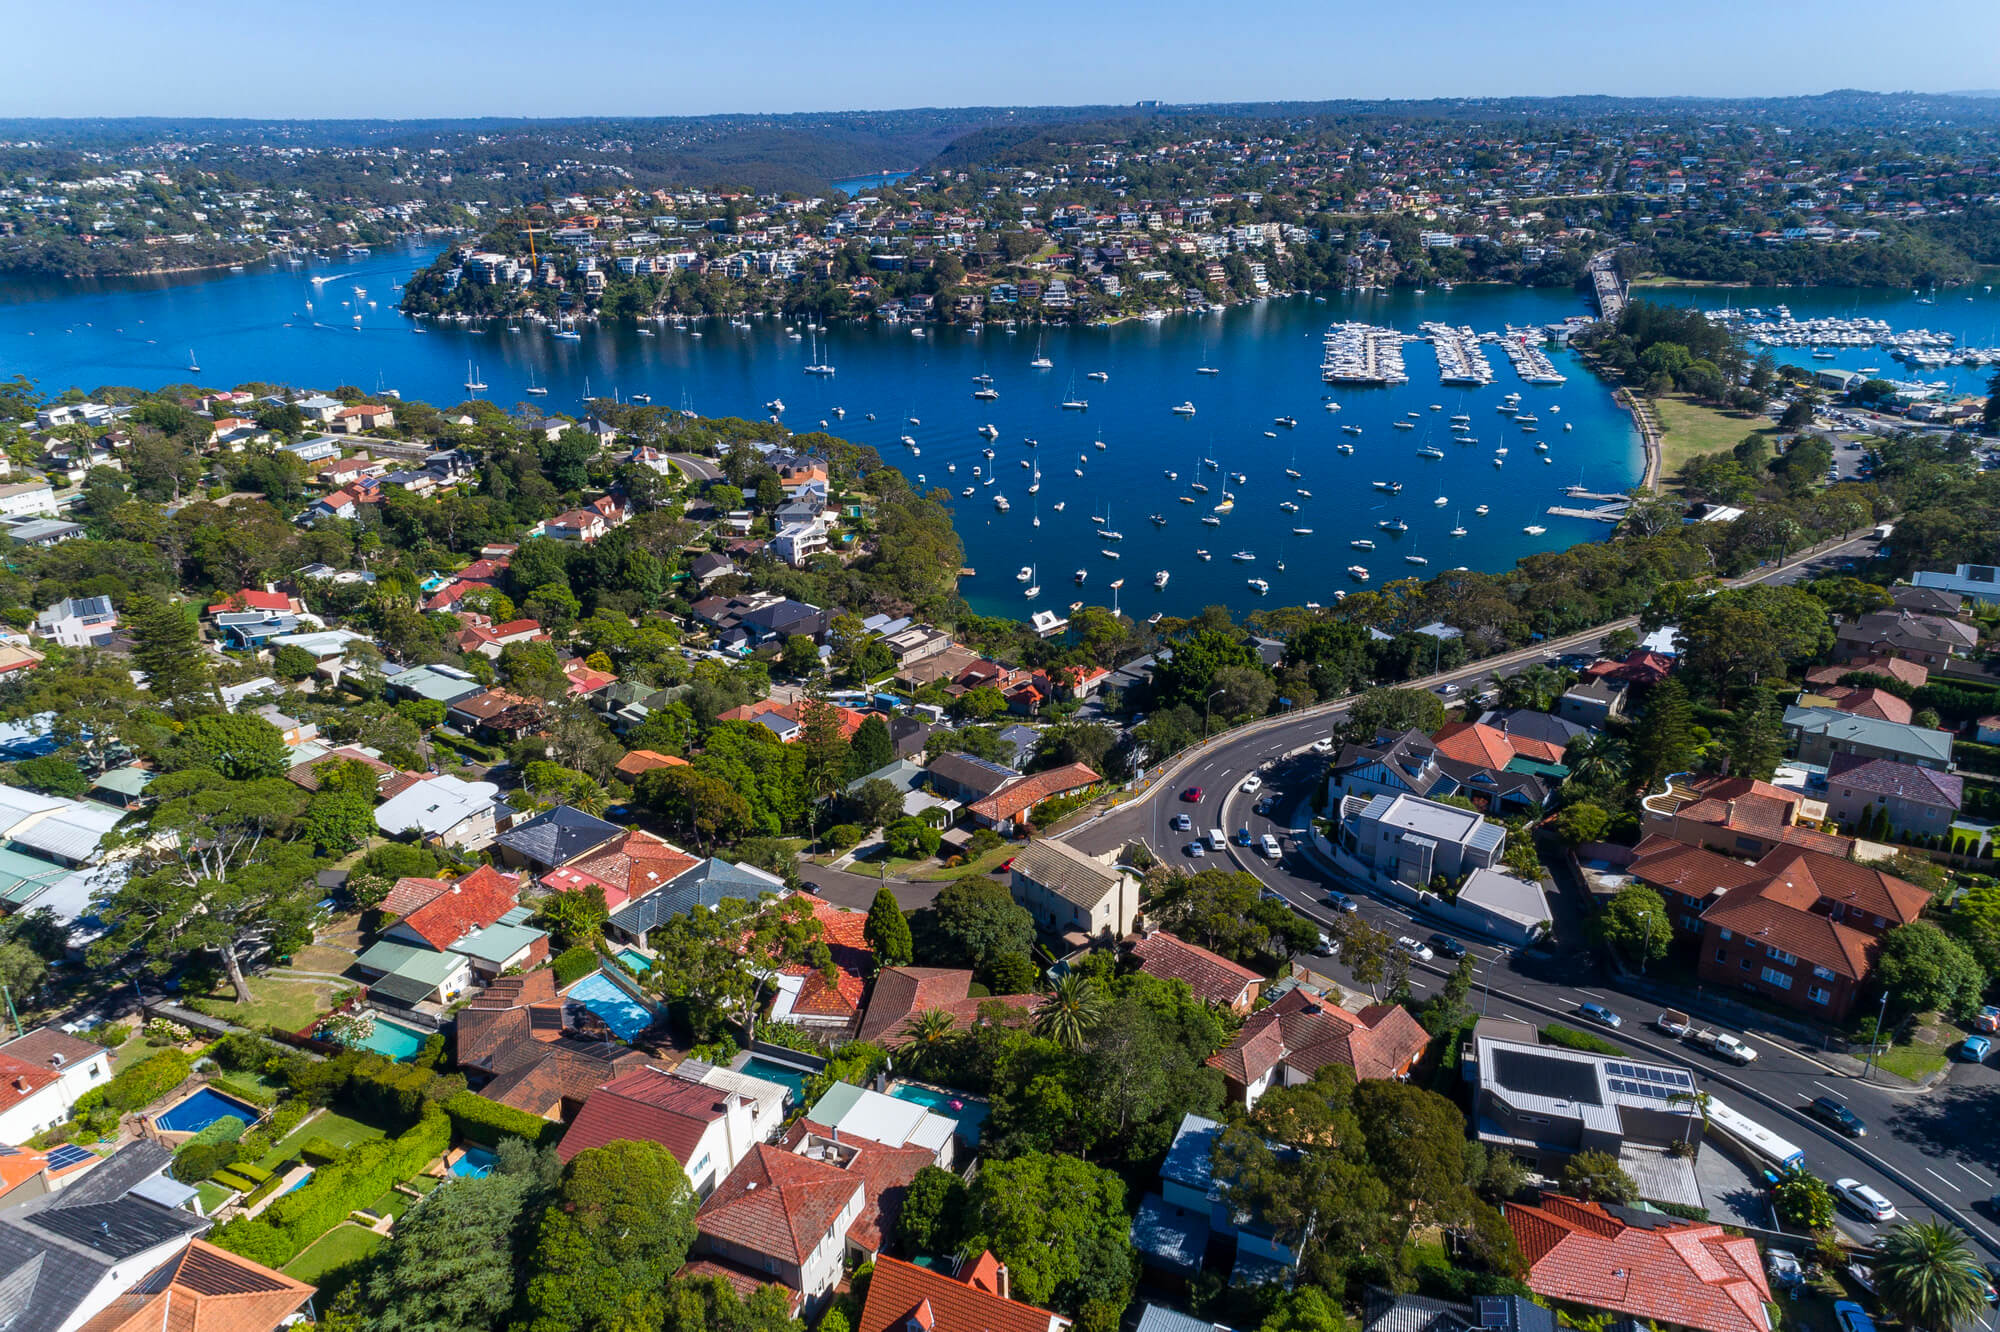 Pittwater drone photography